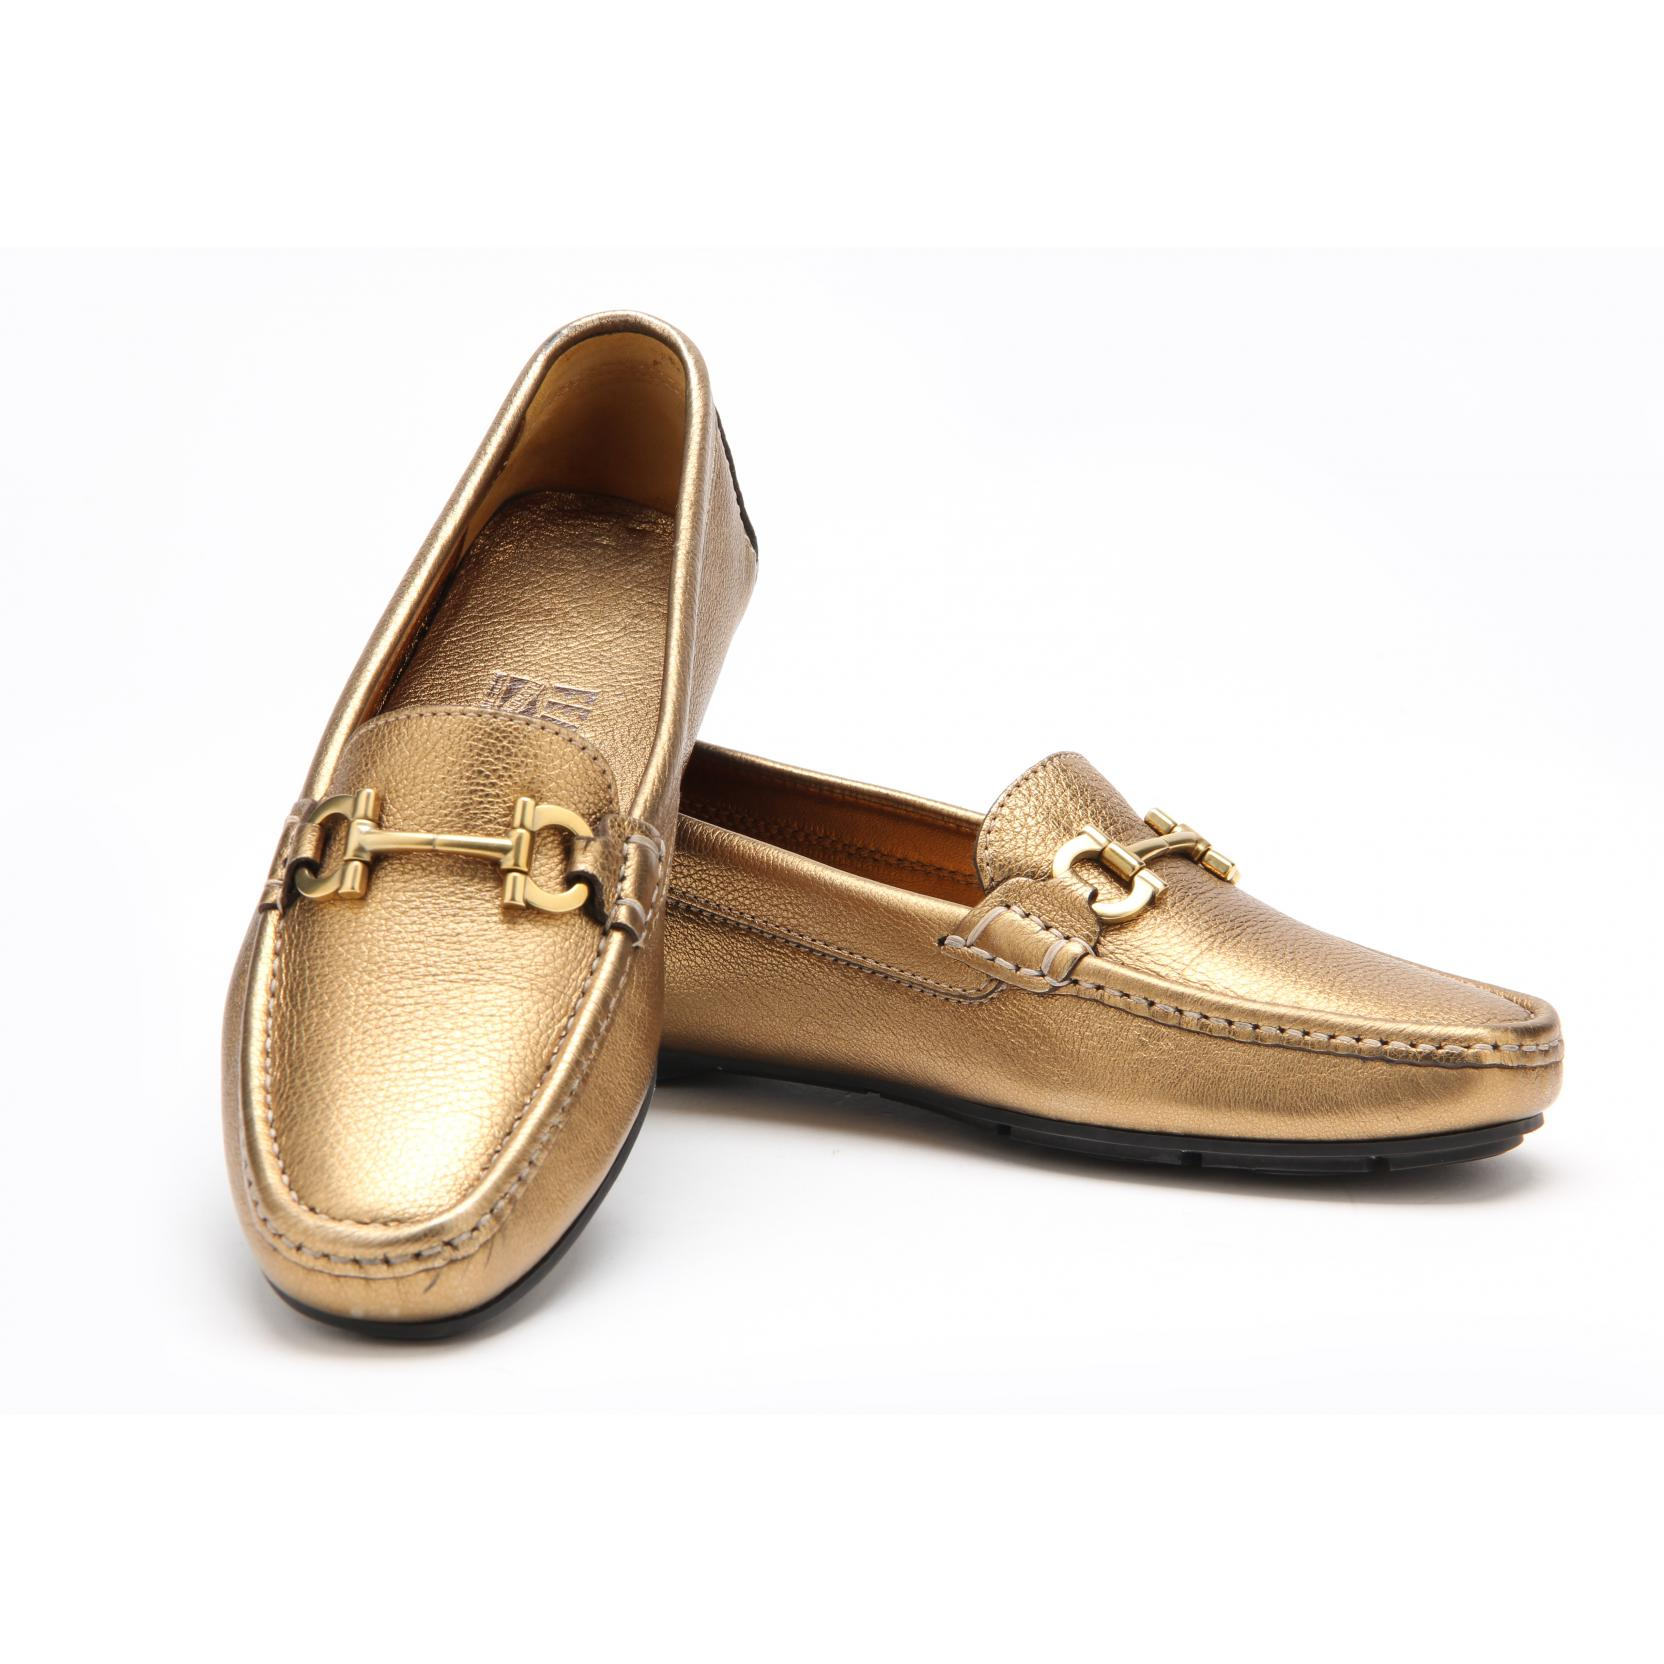 strapped-soft-ladies-loafers-ferragamo